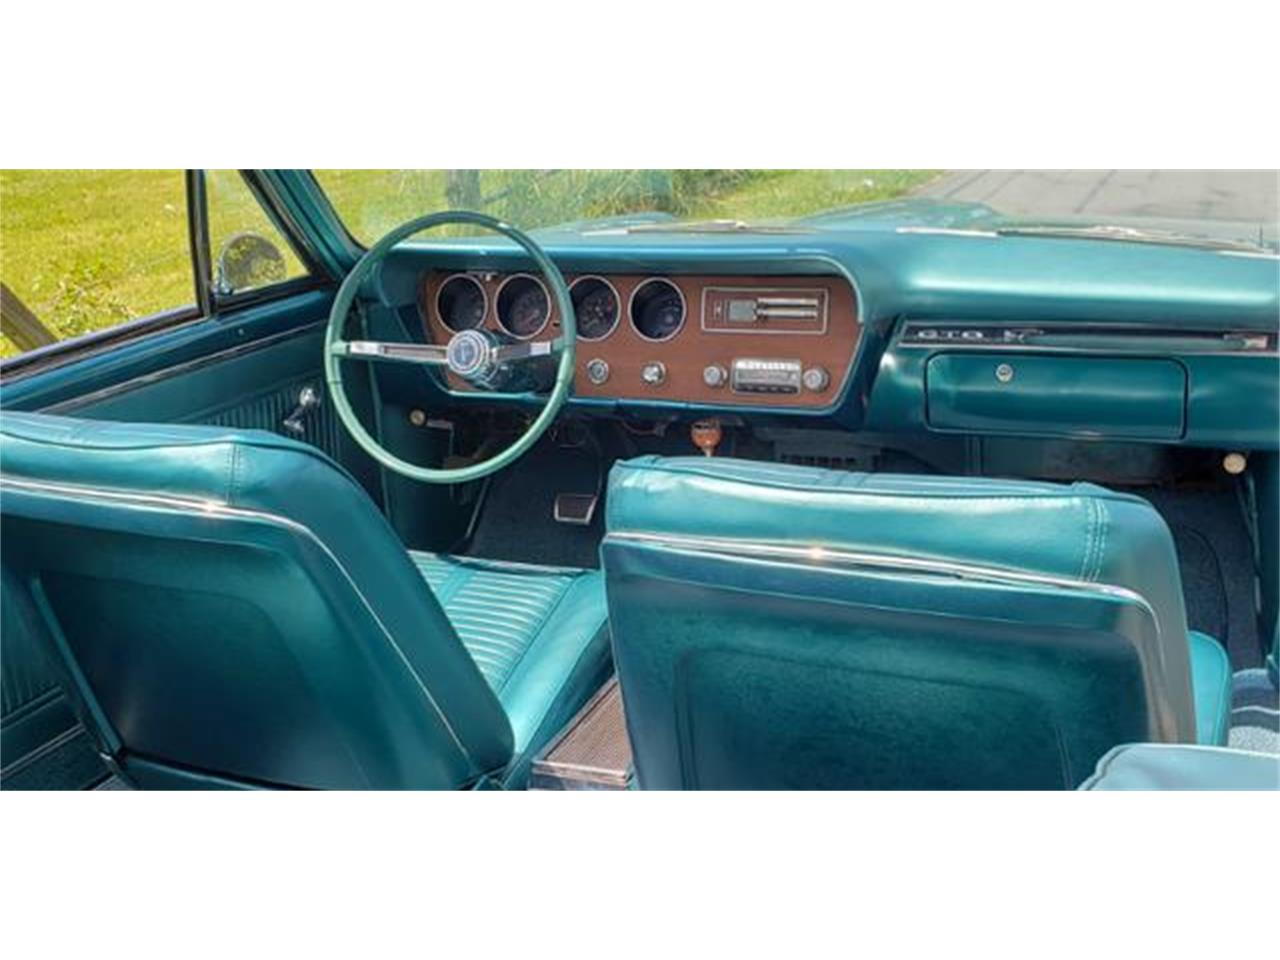 Large Picture of Classic '66 Pontiac GTO - $52,500.00 Offered by Universal Auto Sales - QEBL